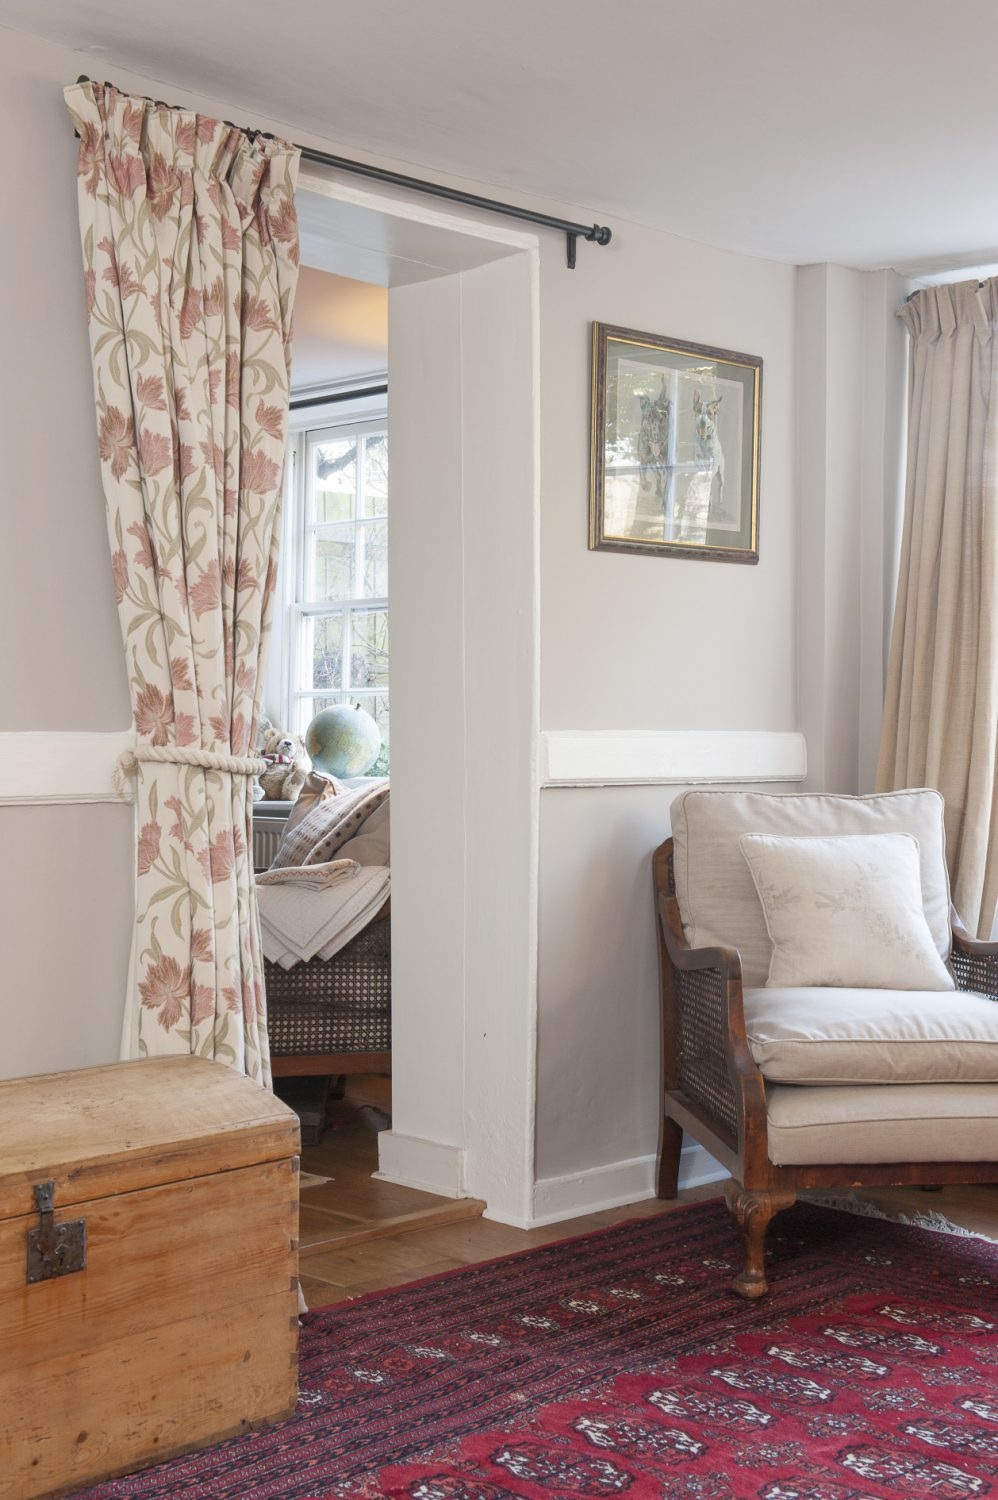 One enters the original cottage into a hallway which might have been one of the original reception rooms